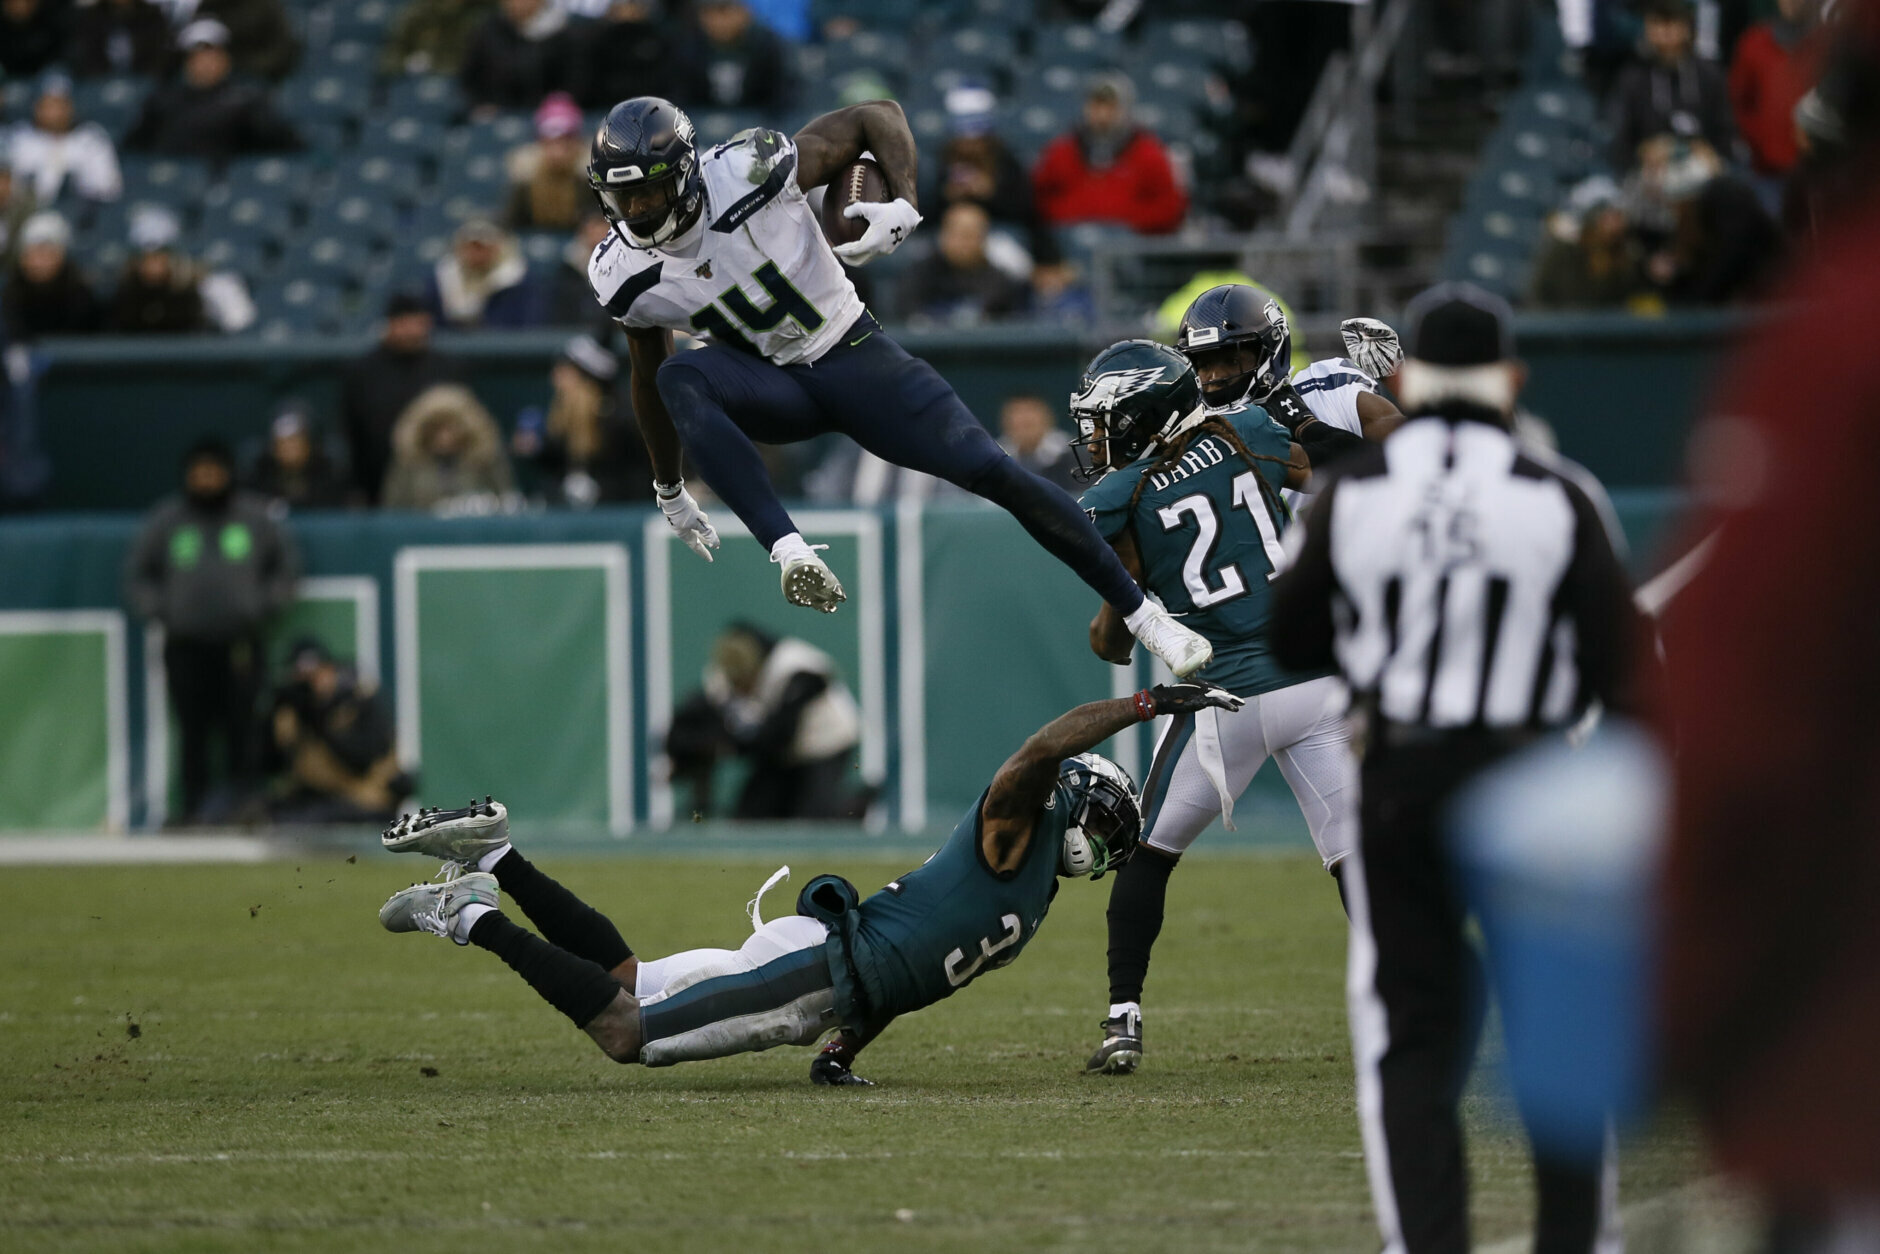 """<p><b><i>Seahawks 17</i></b><br /> <b><i>Eagles 9</i></b></p> <p>Seattle&#8217;s record-tying 11th one-score victory of the season was a tad underwhelming considering it shouldn&#8217;t have been a one-score game against such <a href=""""https://twitter.com/CBSSportsHQ/status/1213995670190858240?s=20"""" target=""""_blank"""" rel=""""noopener"""">an injury-depleted team</a>. But D.K. Metcalf deserves props for setting a rookie record with 160 receiving yards, the fifth-most in NFL history for a player making his postseason debut.</p> <p>Meanwhile, Carson Wentz&#8217;s playoff debut was short lived for the same reason it took him four seasons to make his playoff debut: Injury. <a href=""""https://www.espn.com/nfl/story/_/id/28430769/eagles-call-hit-carson-wentz-dirty-jadeveon-clowney-denies-intent"""" target=""""_blank"""" rel=""""noopener"""">Incidental or not</a>, it was a tough break for the already-shorthanded Eagles, who lost in the Wild Card round for the first time since 2013 despite being <a href=""""https://profootballtalk.nbcsports.com/2020/01/04/eagles-are-underdogs-for-sixth-straight-postseason-game-won-four-of-last-five/"""" target=""""_blank"""" rel=""""noopener"""">a perennial underdog</a>. Josh McCown — who is heretofore &#8220;<a href=""""https://twitter.com/ESPNStatsInfo/status/1213965798873731072?s=20"""" target=""""_blank"""" rel=""""noopener"""">The 40-year-old (Playoff) Virgin</a>&#8221; — filled in admirably, but he&#8217;s clearly no Nick Foles.</p>"""